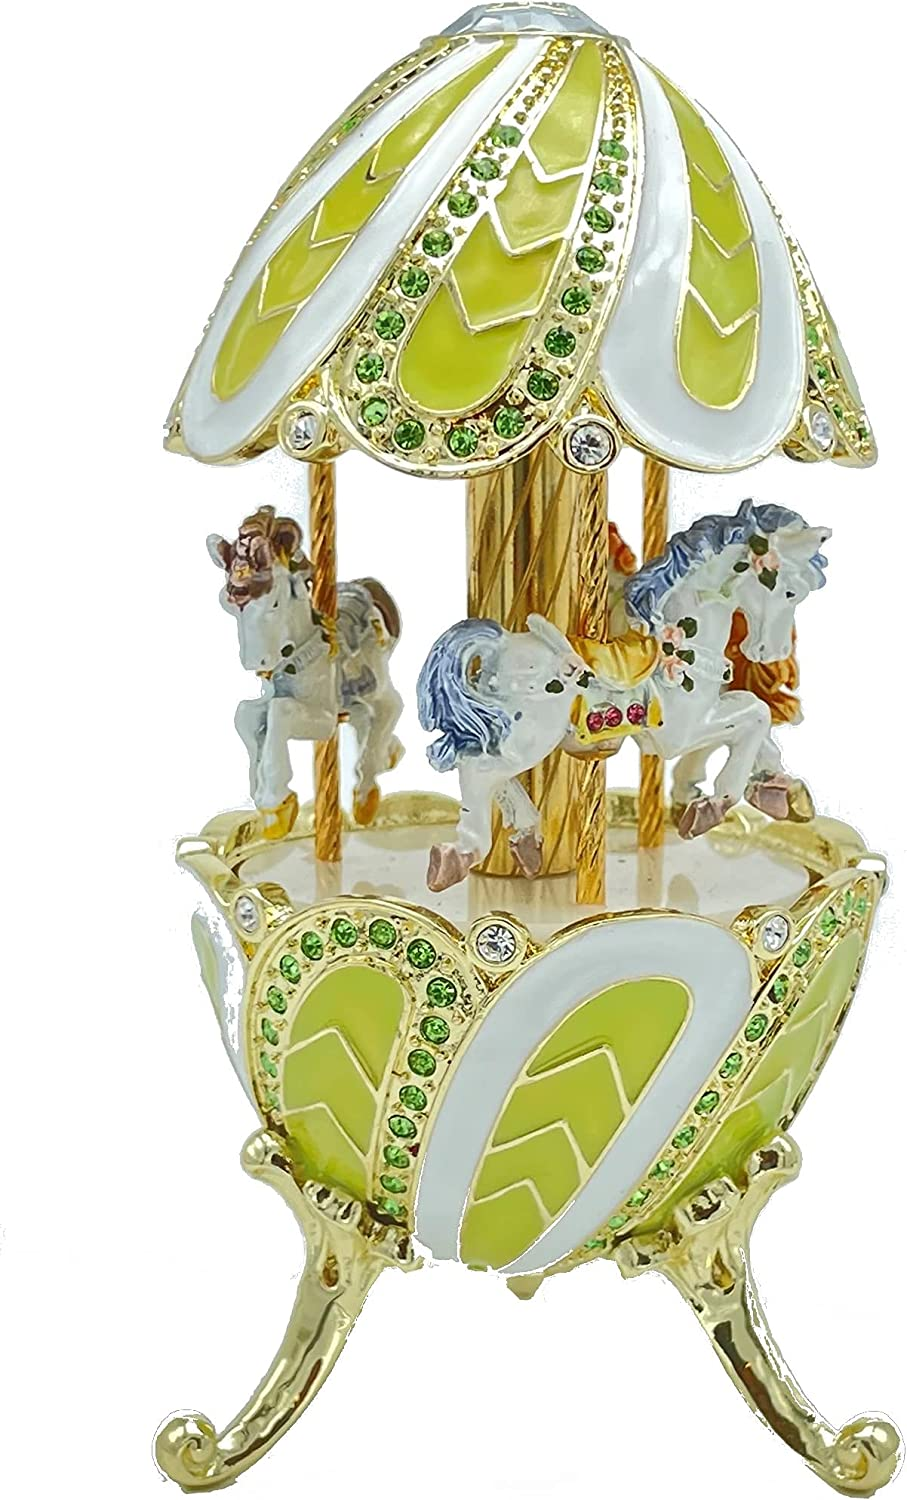 Green Carousel With White New arrival Horses Animer and price revision Playing lake Tcha Swan Music By